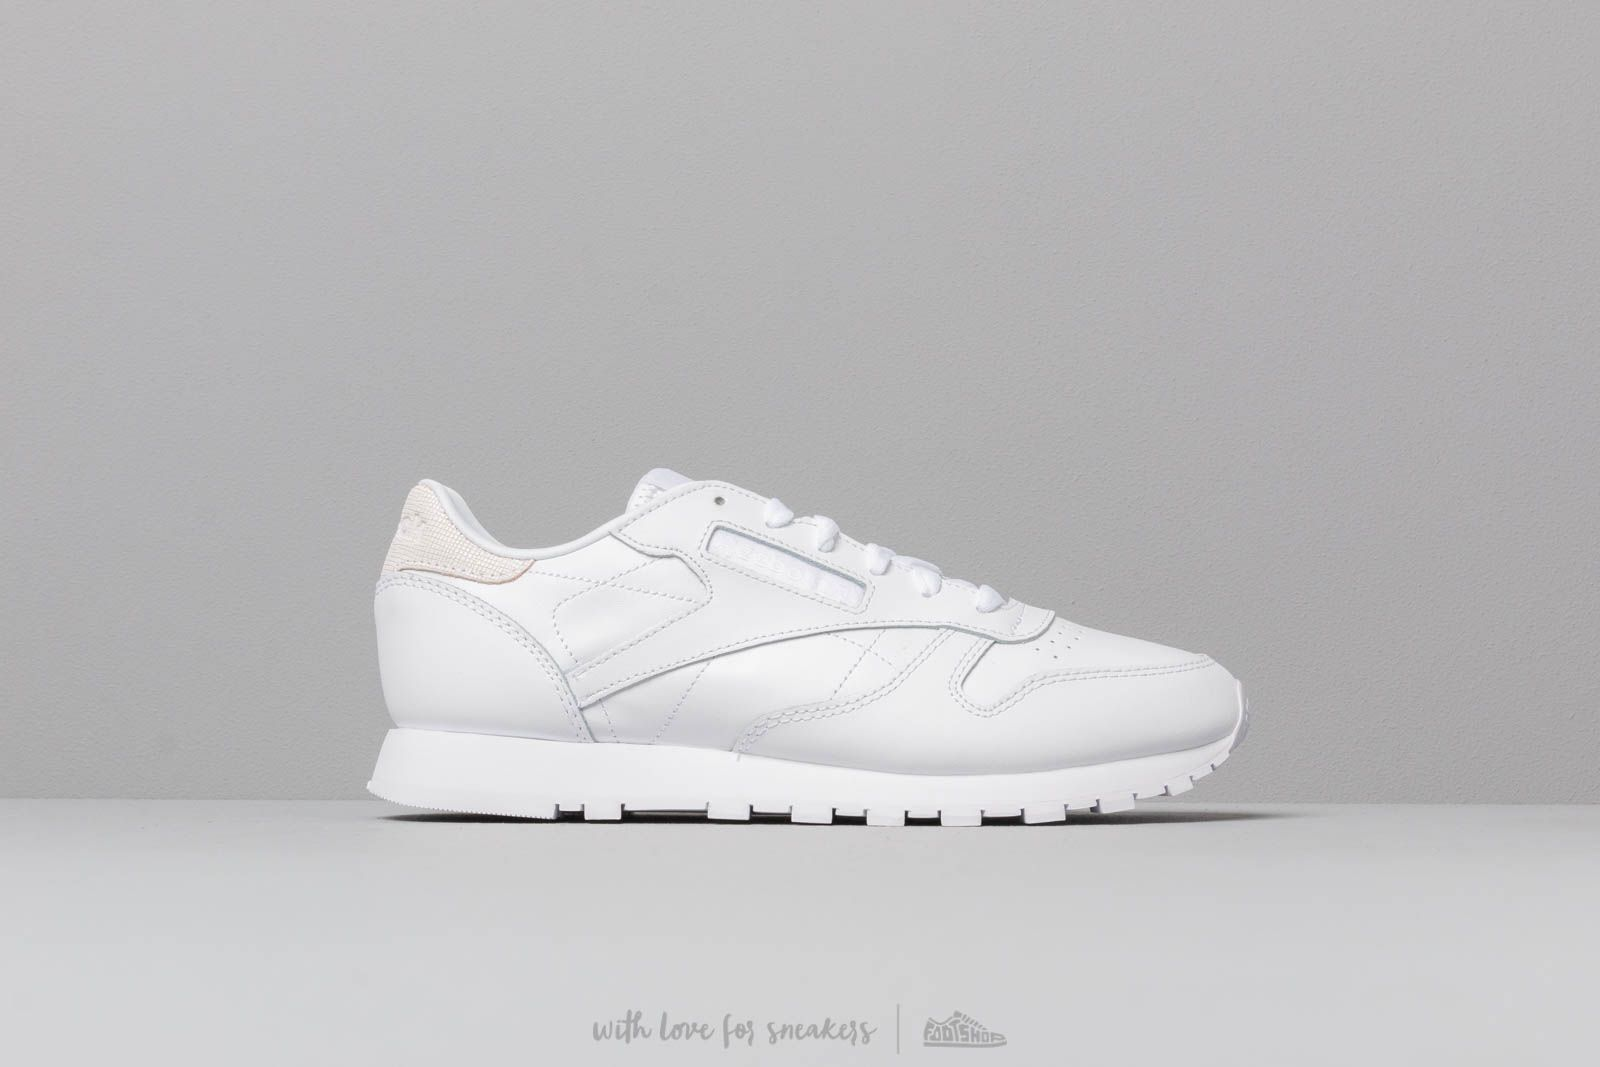 6b90afd1099 Reebok Classic Leather White  Mineral Mist at a great price £80 buy at  Footshop